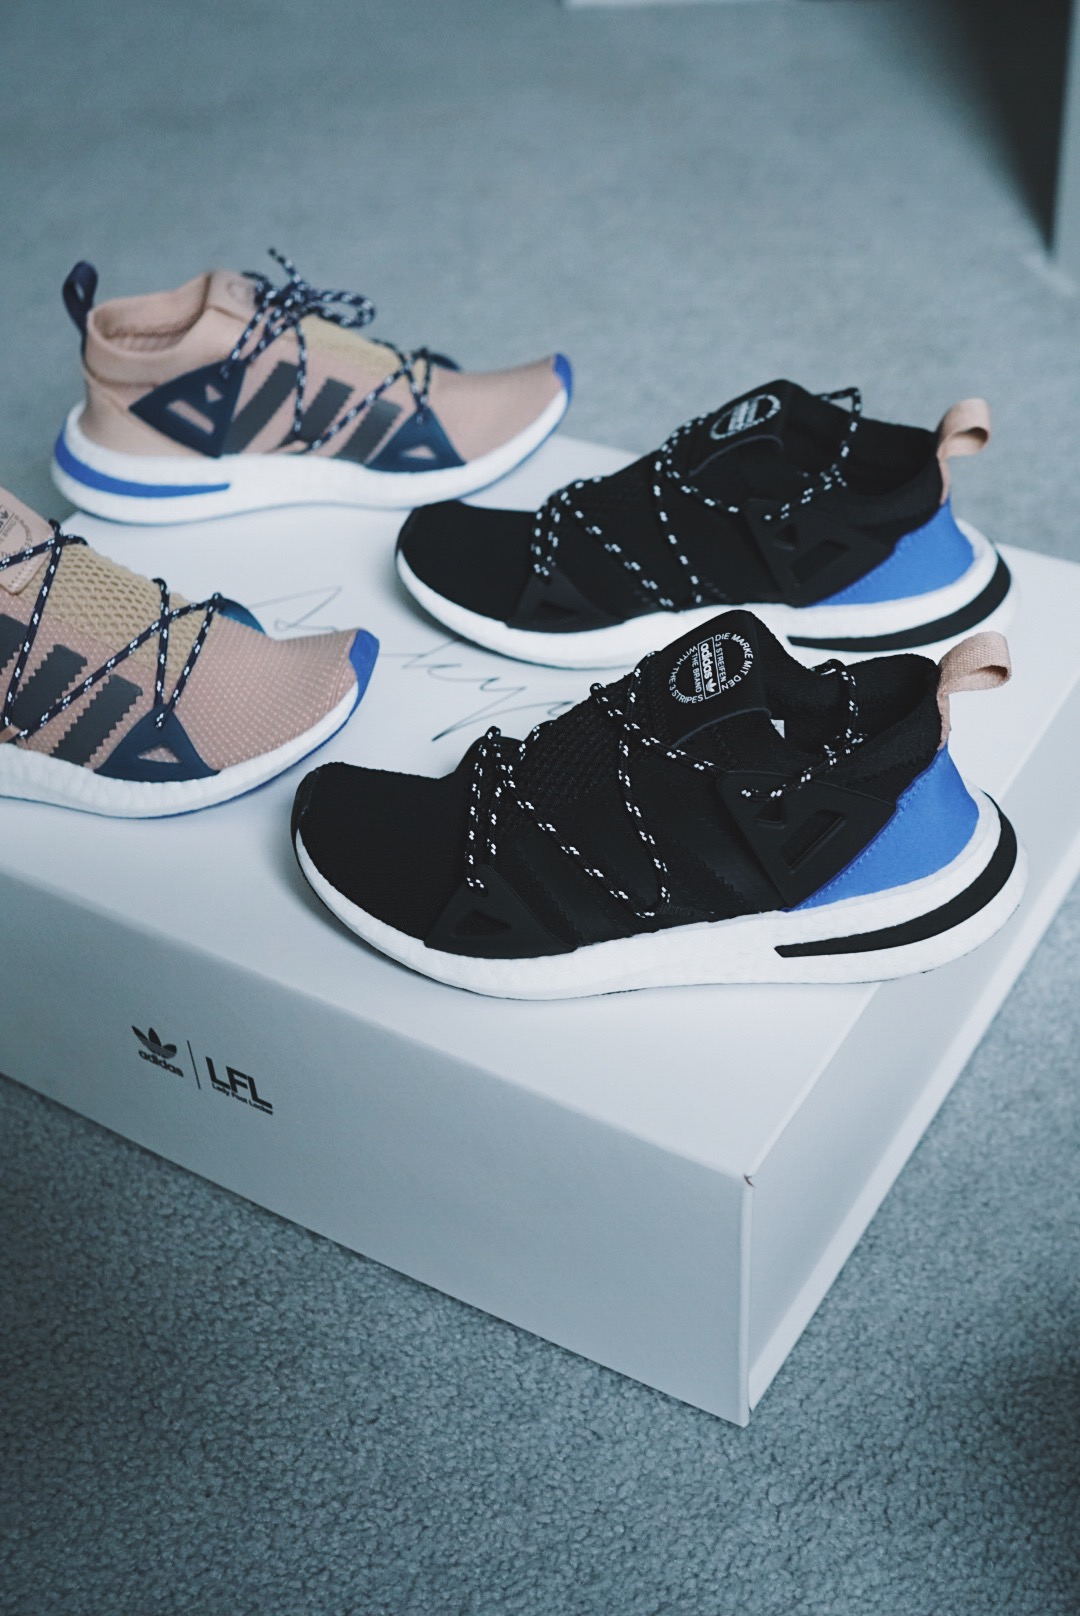 how to get partnerships with blog how to become a brand ambassador how to partner with brands how to be a lifestyle blogger adidas wanderlust collection